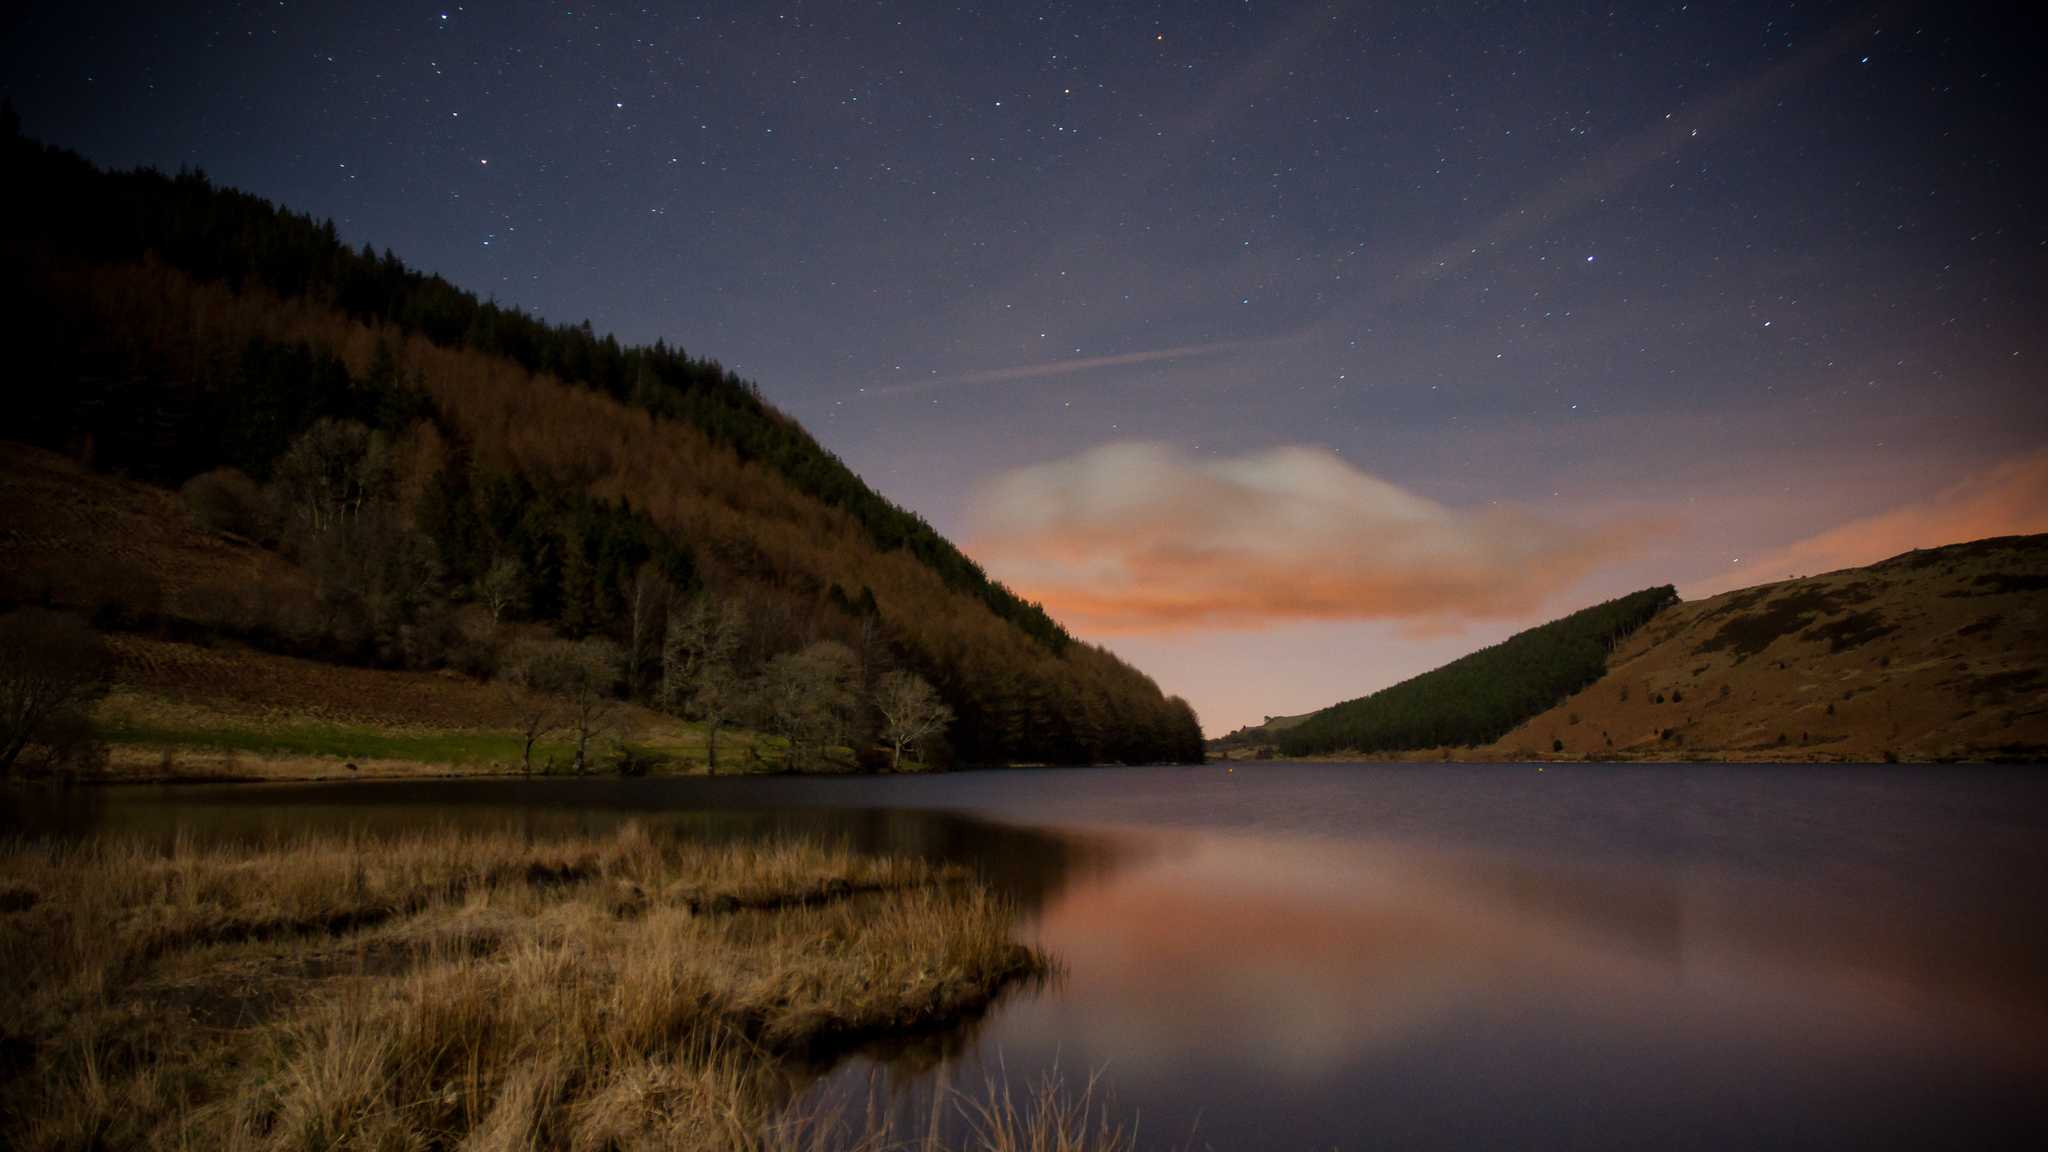 Llyn Geirionydd by Moonlight, Snowdonia | © Stuart Madden Flickr